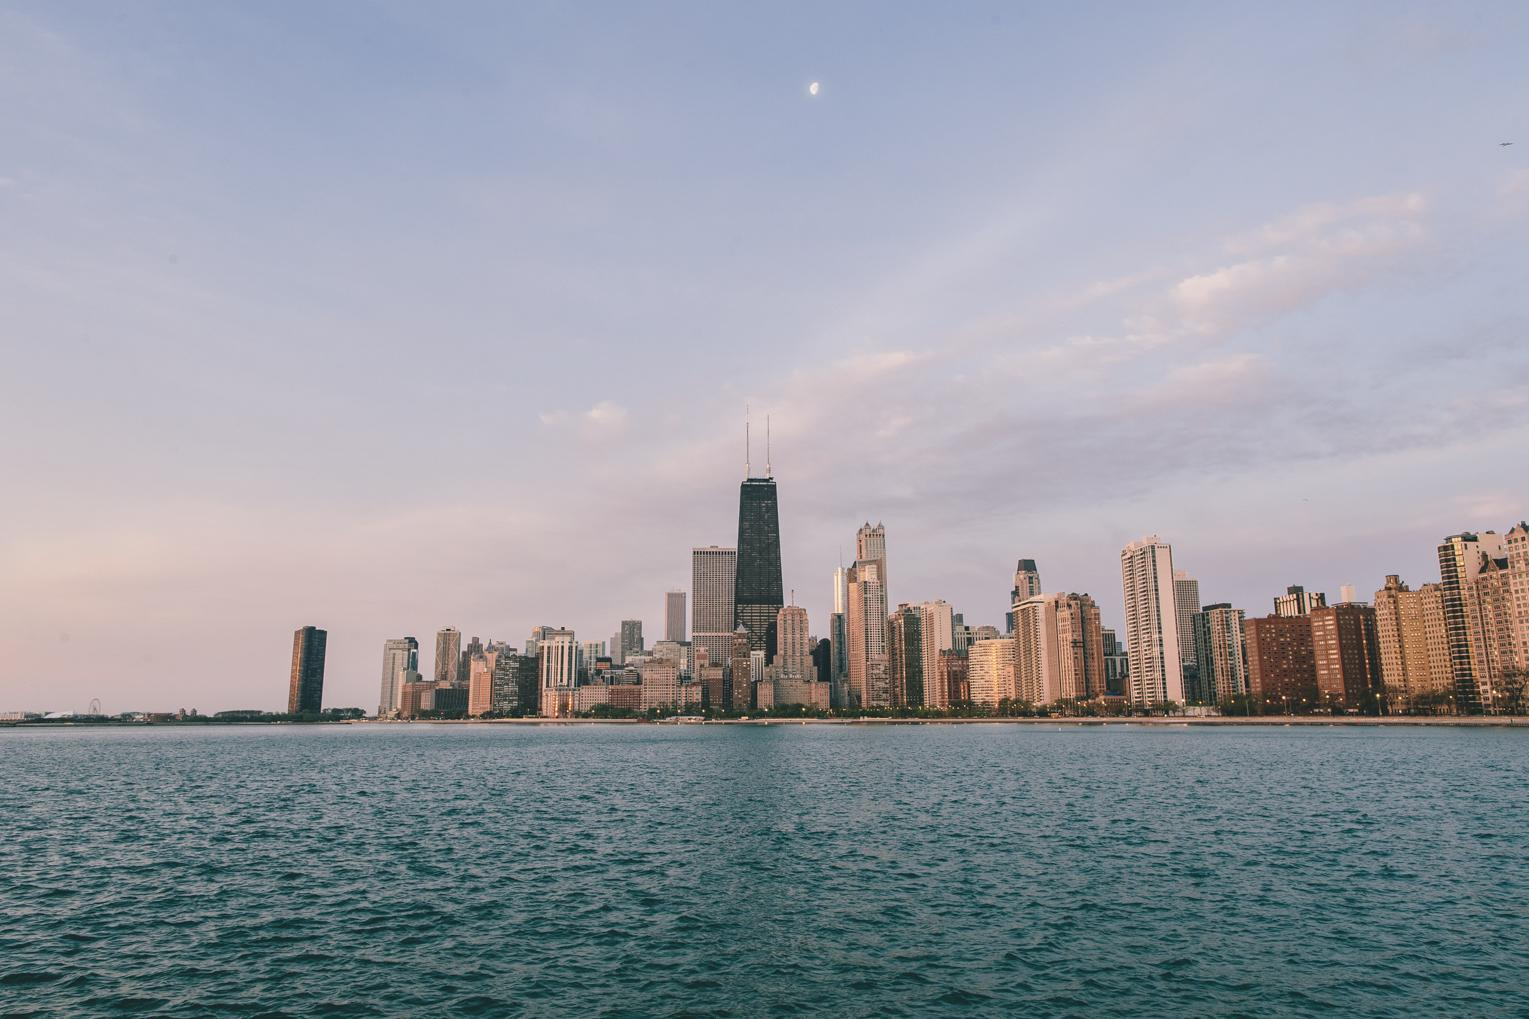 Welcome to Chicago. Sincerely, trashhand - image 2 - student project